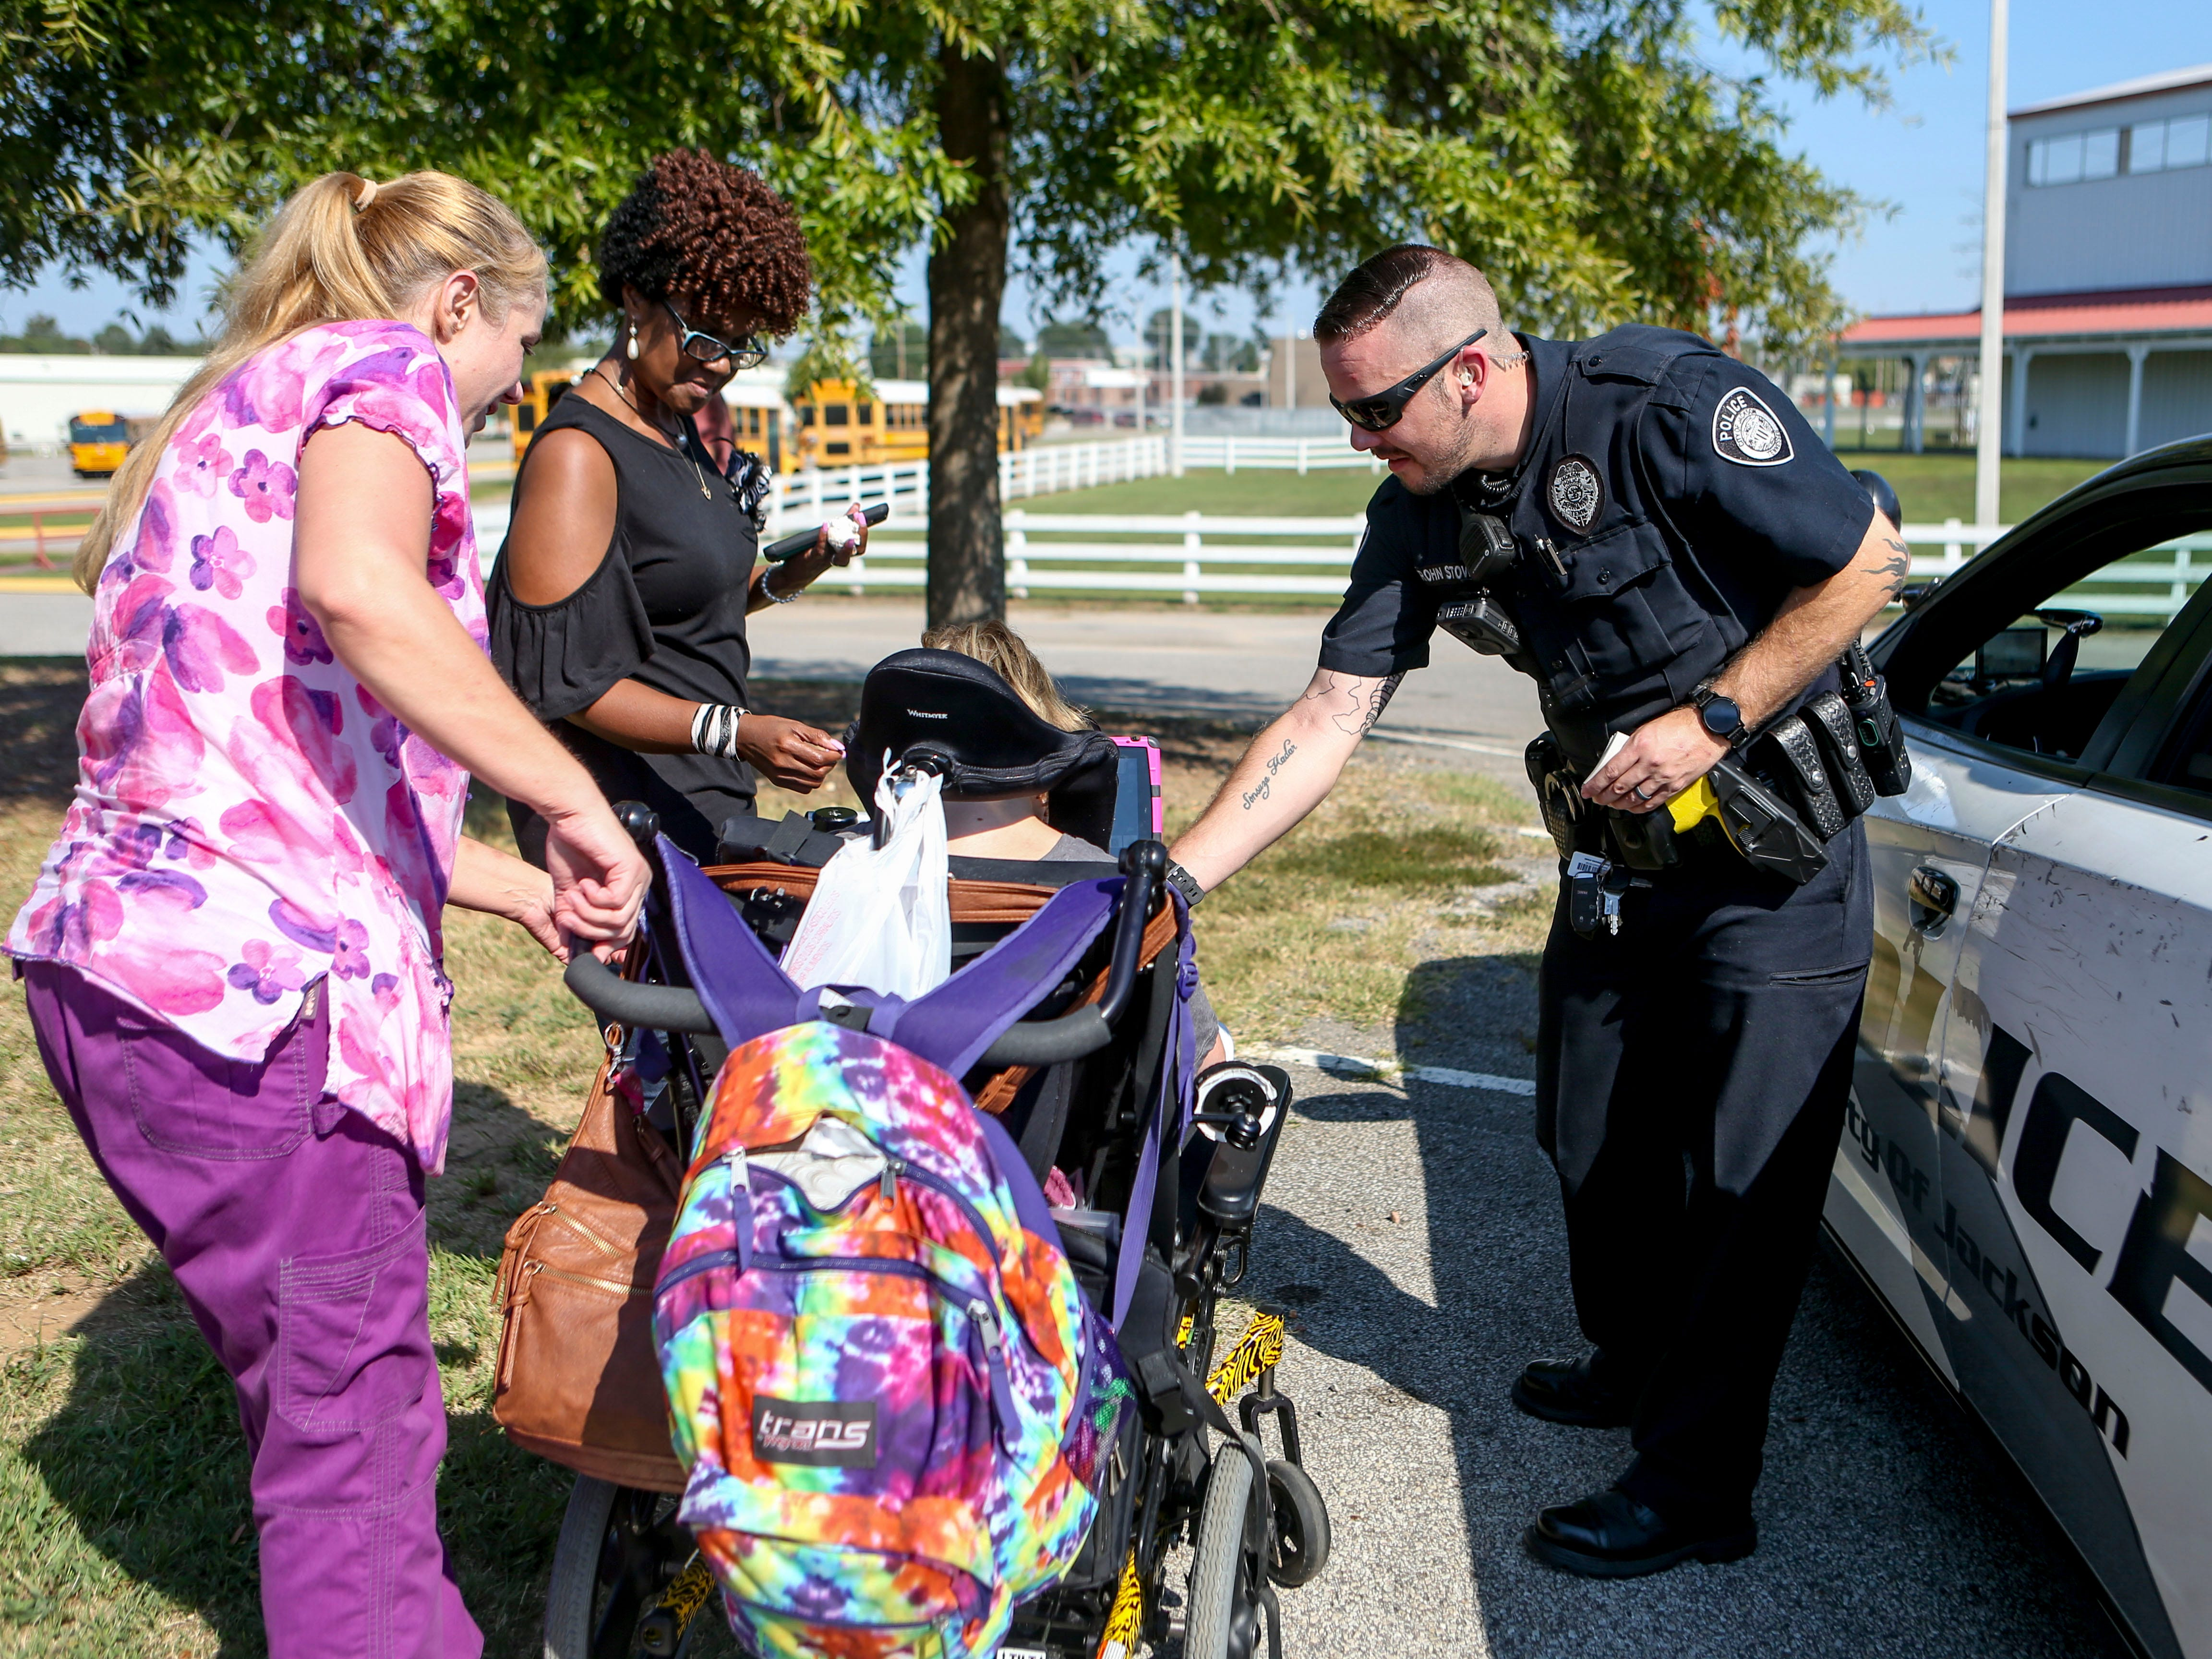 A Jackson Police Officer hands an attendee a sticker at the Day of Champions celebration held at Jackson Fairgrounds Park in Jackson, Tenn., on Wednesday, Sept. 19, 2018.